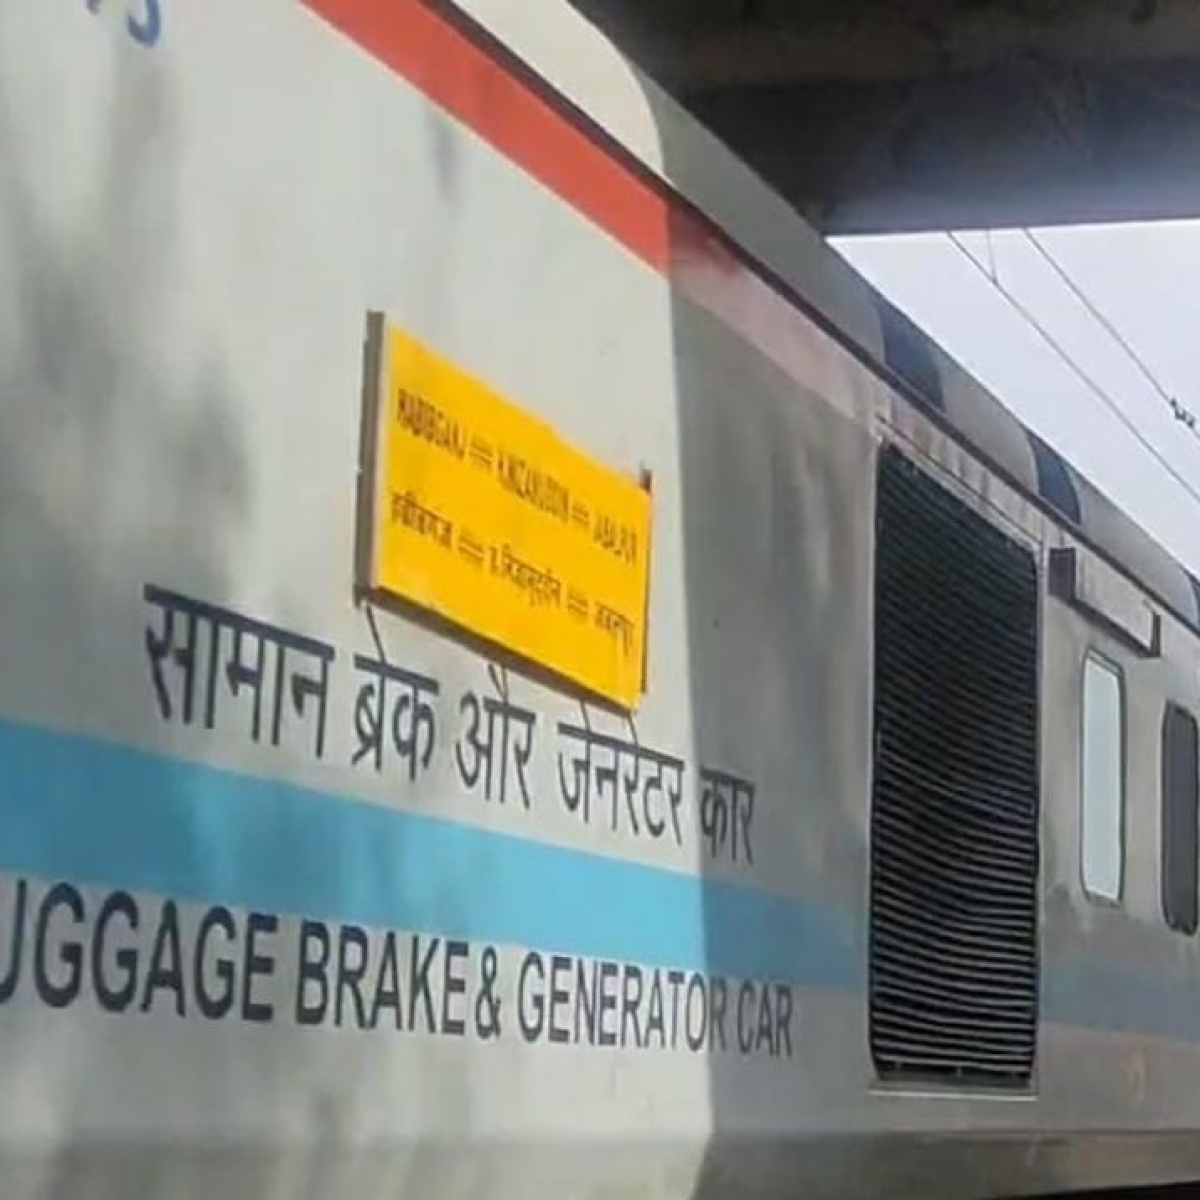 Jabalpur- Hazarat Nizamuddin, Itarsi -Bhopal trains introduced to clear festival rush